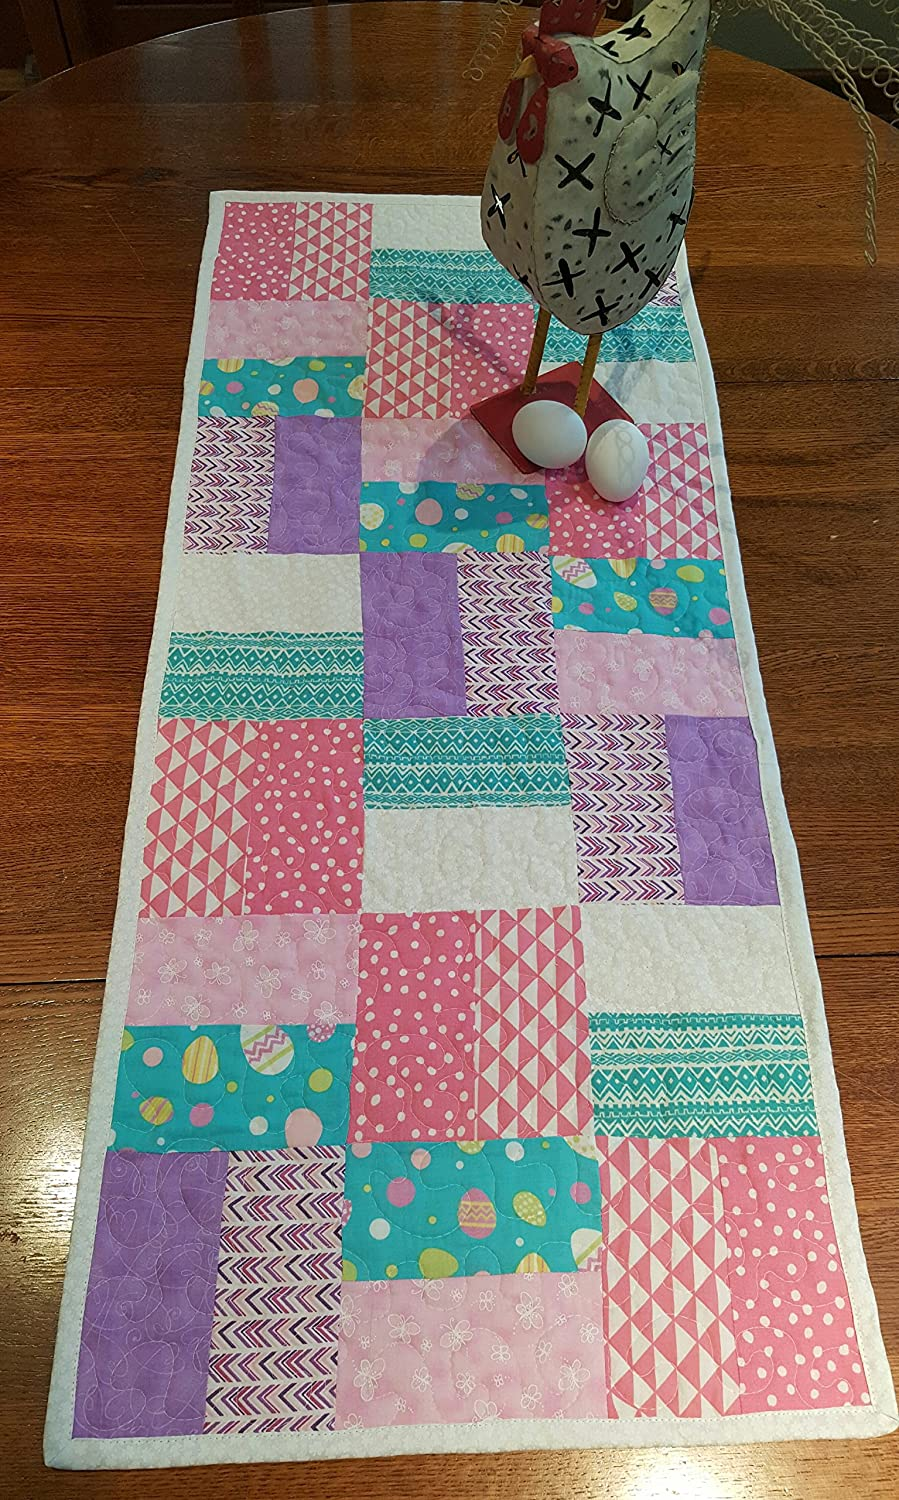 P. Cottontail Quilted Easter Table Runner - Spring Fabrics and Free Shipping!